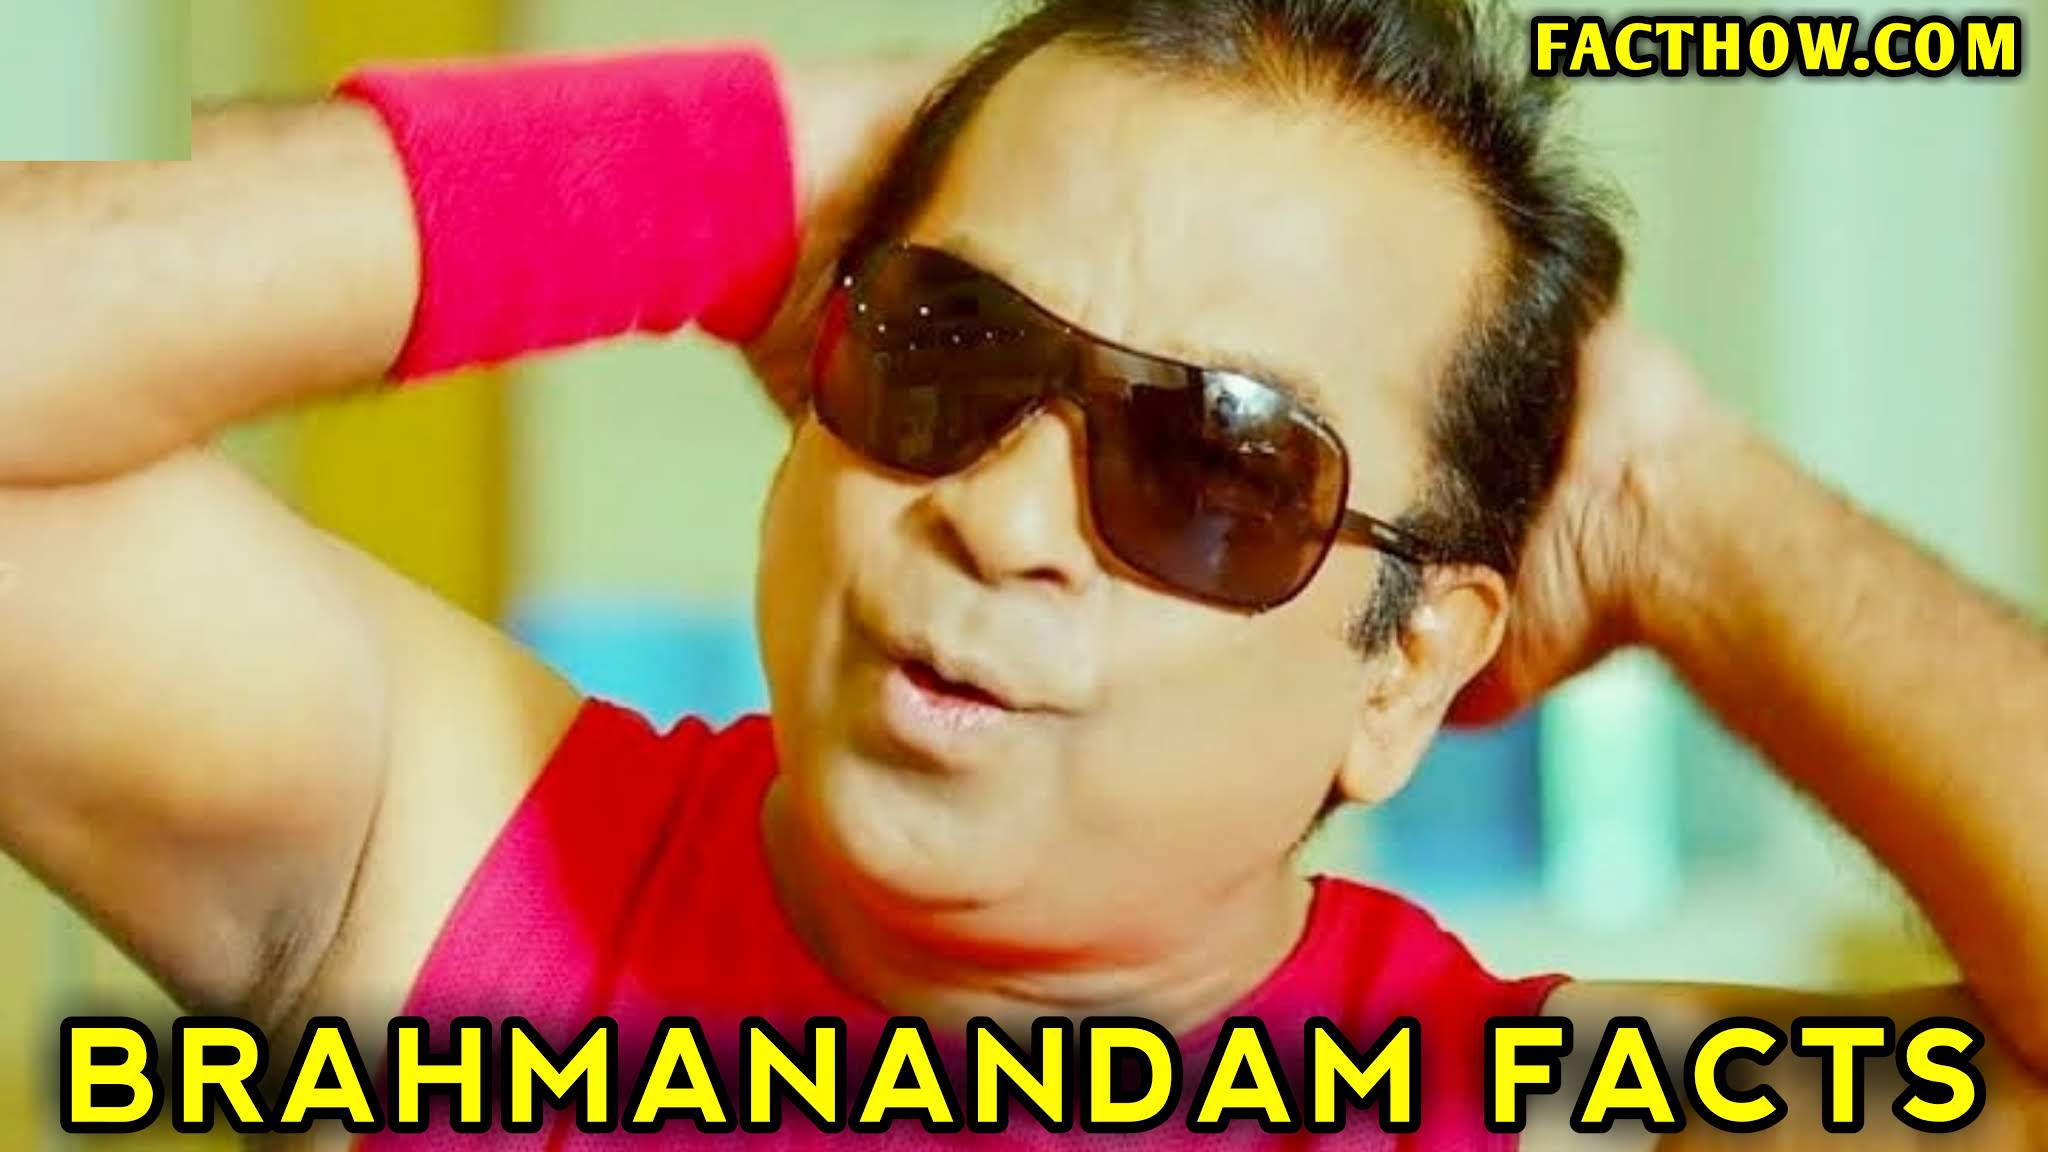 facts-about-brahmanandam-tollywood-telugu-comedian-brahmanandam-all-comedy-movies-download-hindi-dubbed-fact-how-facthow-rochak-tathya